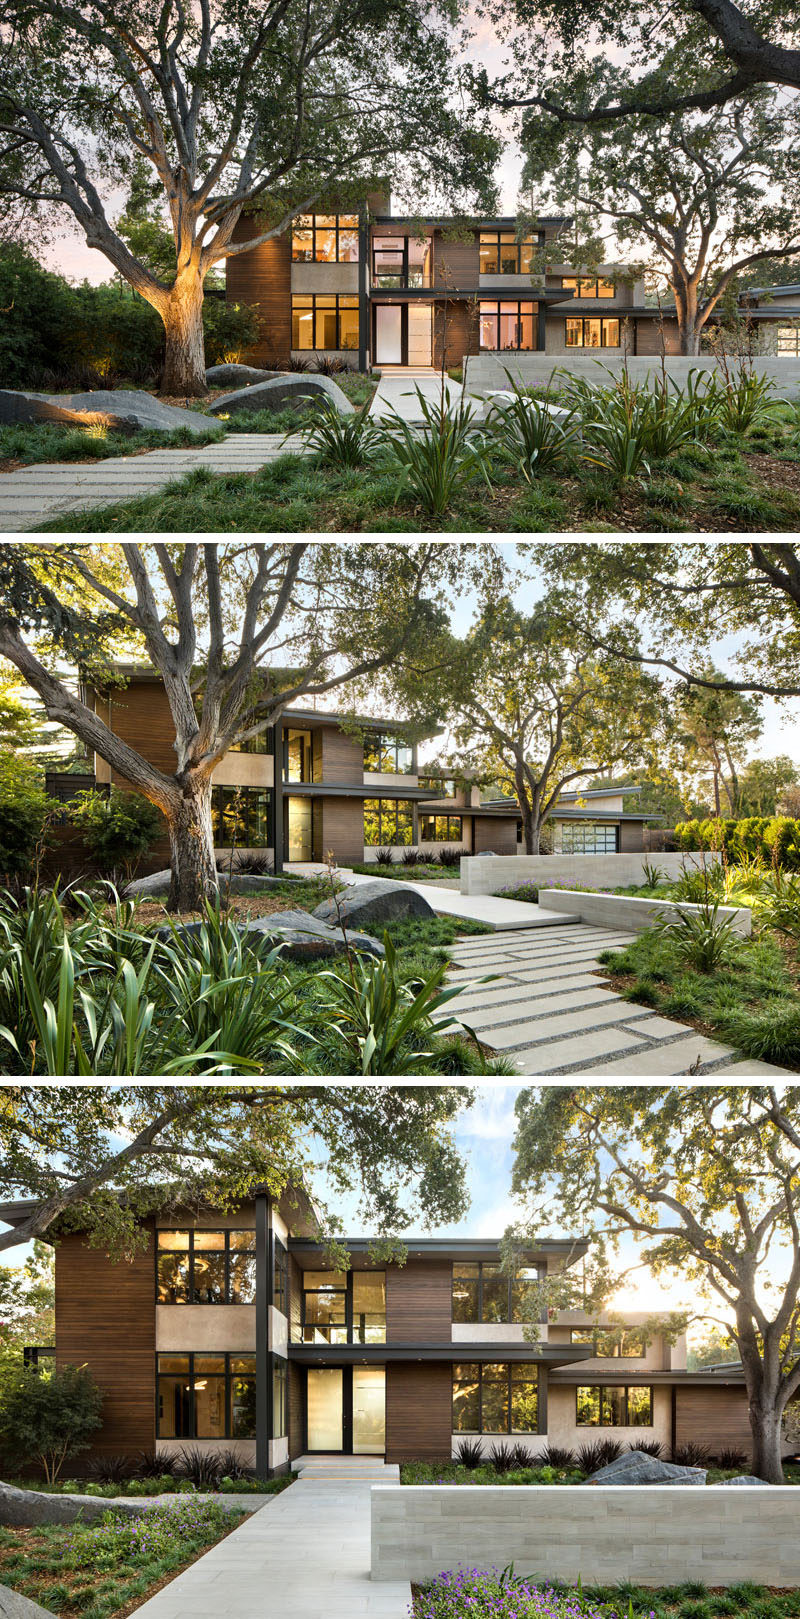 This modern house has small plants and grasses that surround established trees that are highlighted with the use of lighting, and a path leads to the front door. #ModernLandscaping #ModernGarden #ModernHouse